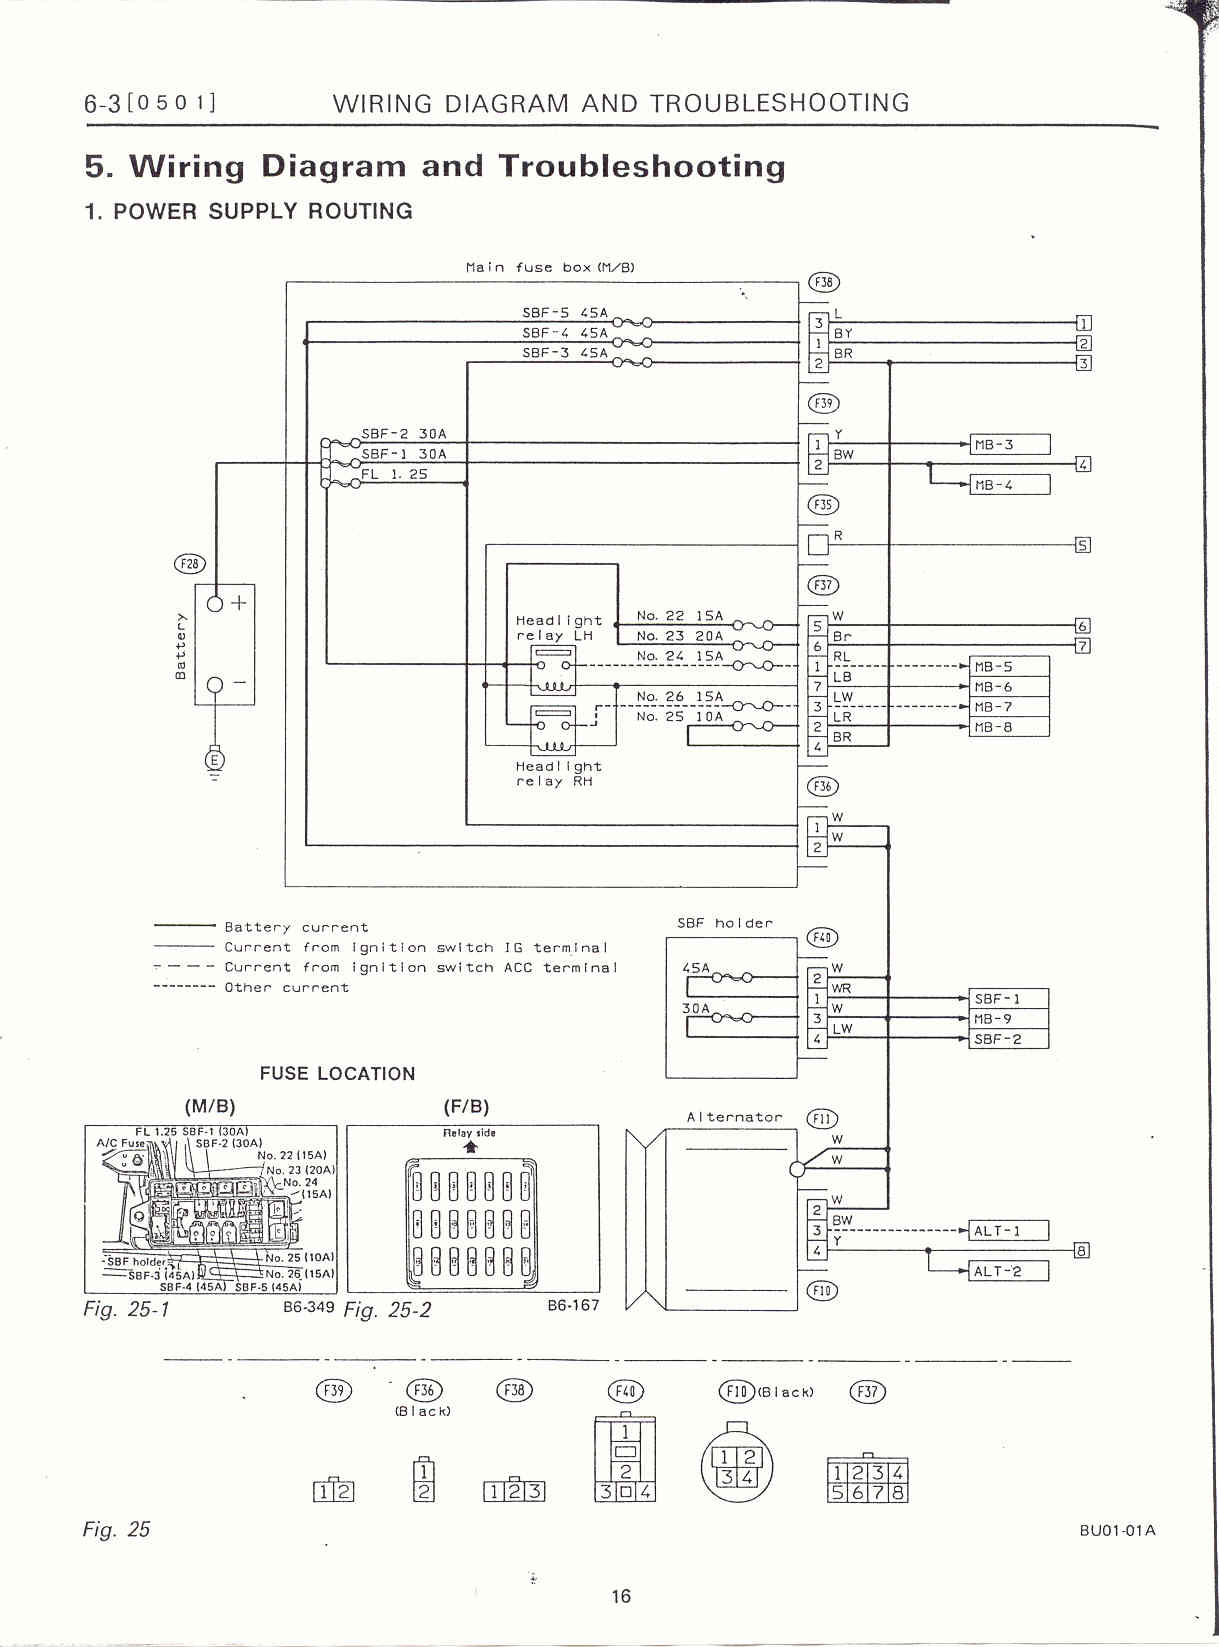 6 3_power_supply_routing1 1997 subaru legacy wiring diagram 2007 subaru legacy wiring toyota tundra radio wiring diagram at gsmportal.co